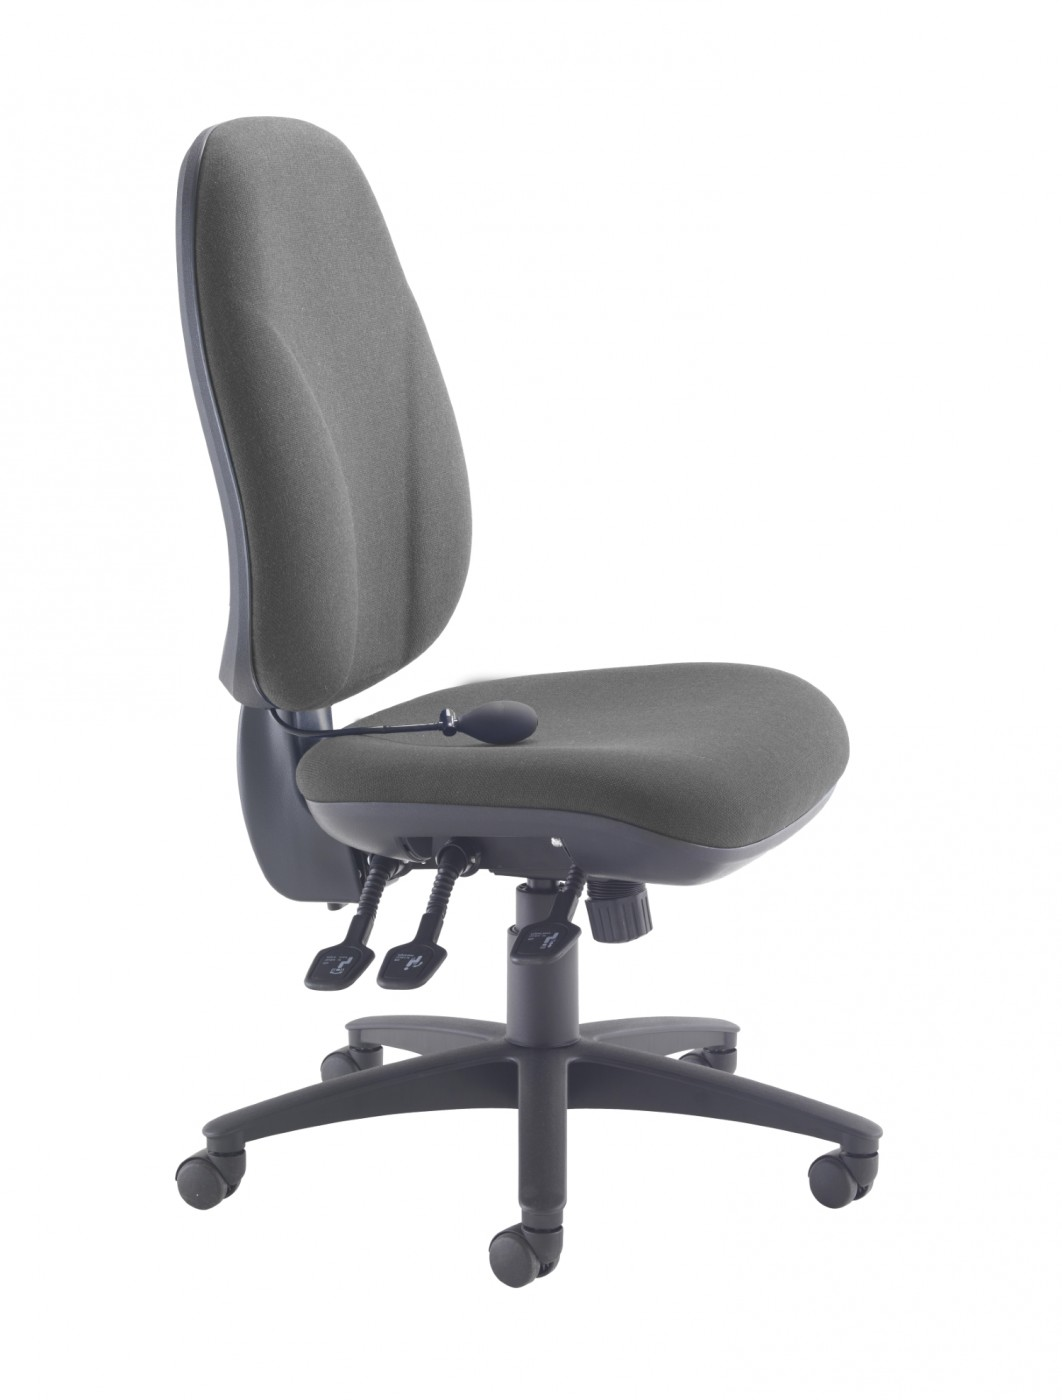 TC Office Concept Maxi Ergo Office Chair CH0808CH In Charcoal   Enlarged  View